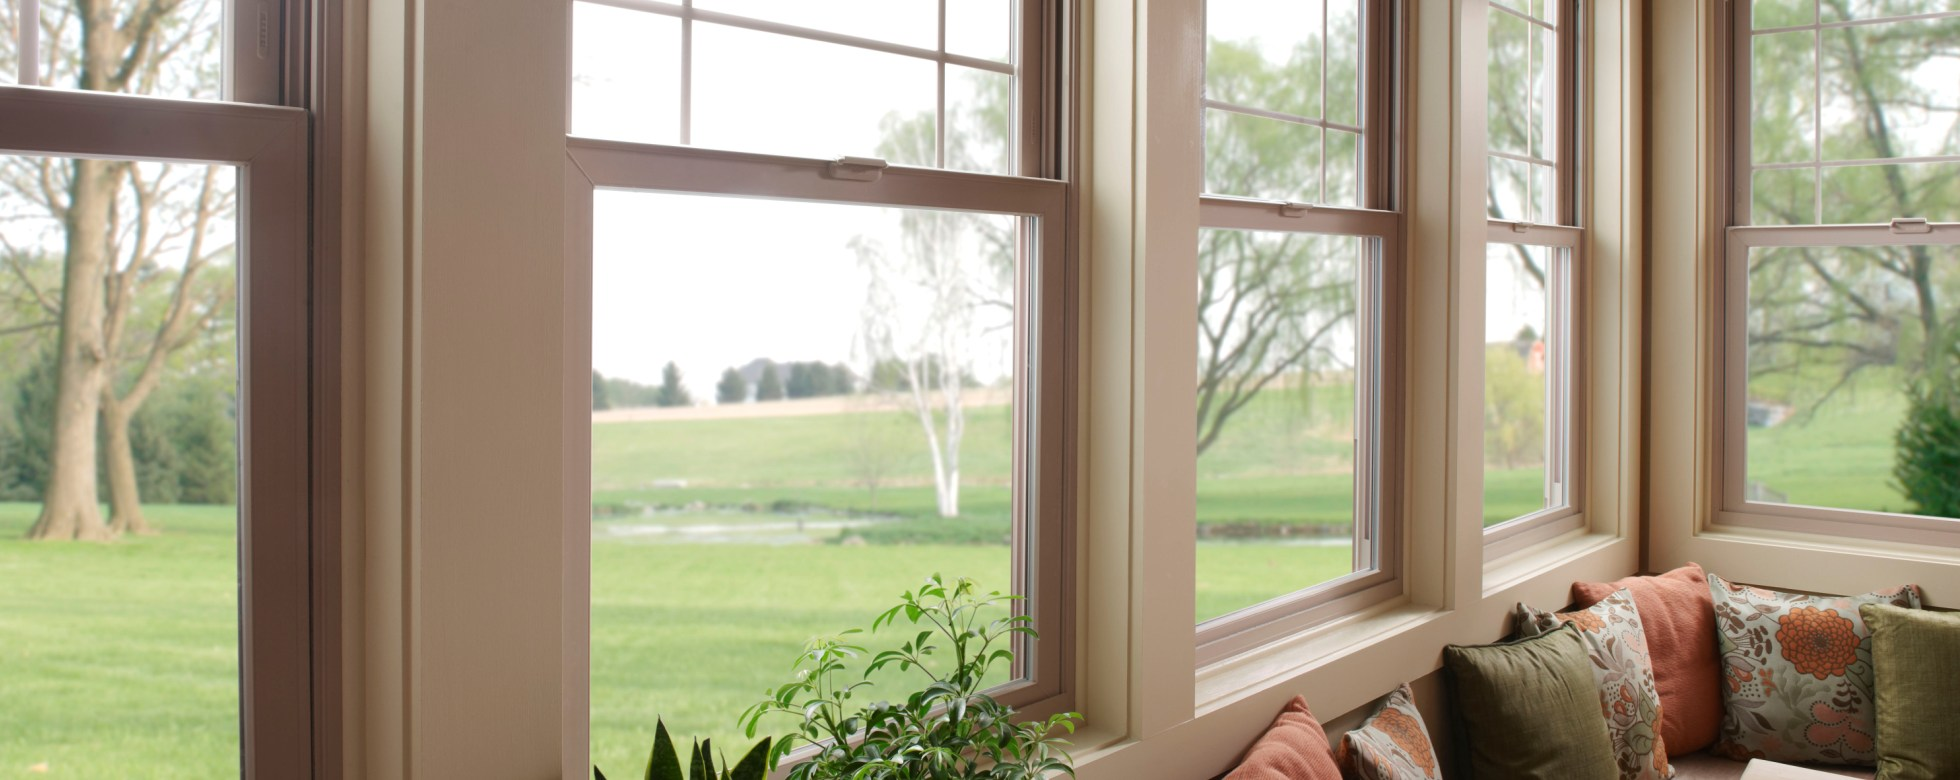 Tips to Clean PVC Doors and Windows & Tips to Clean PVC Doors and Windows | The College People pezcame.com